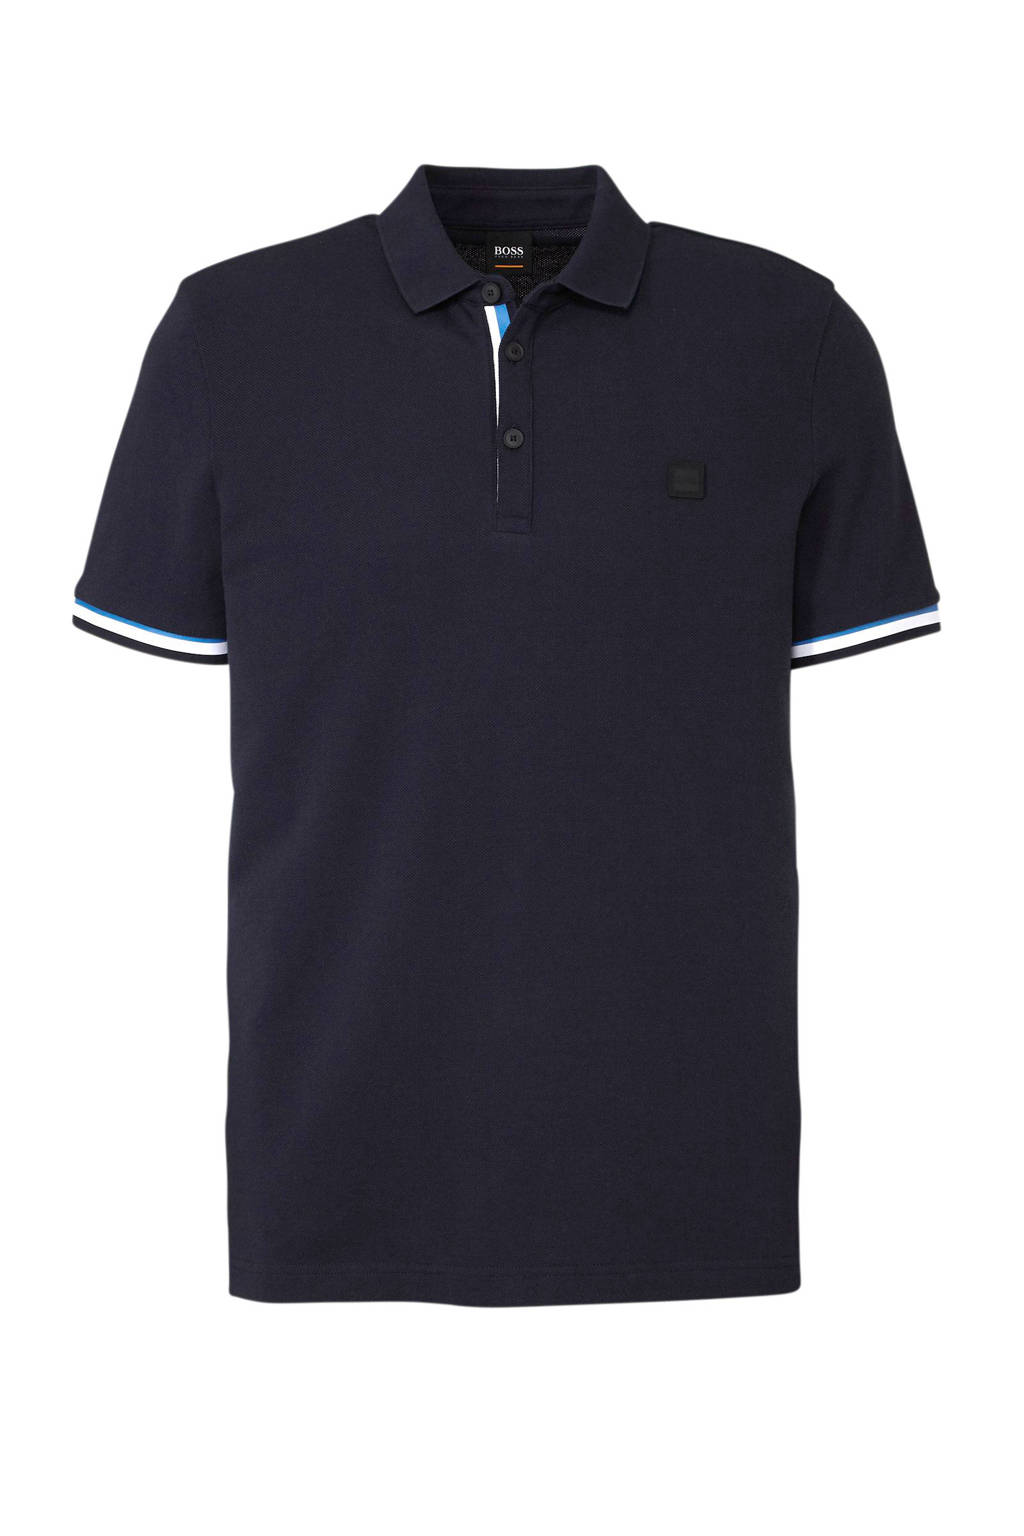 Boss Casual regular fit polo donkerblauw, Donkerblauw